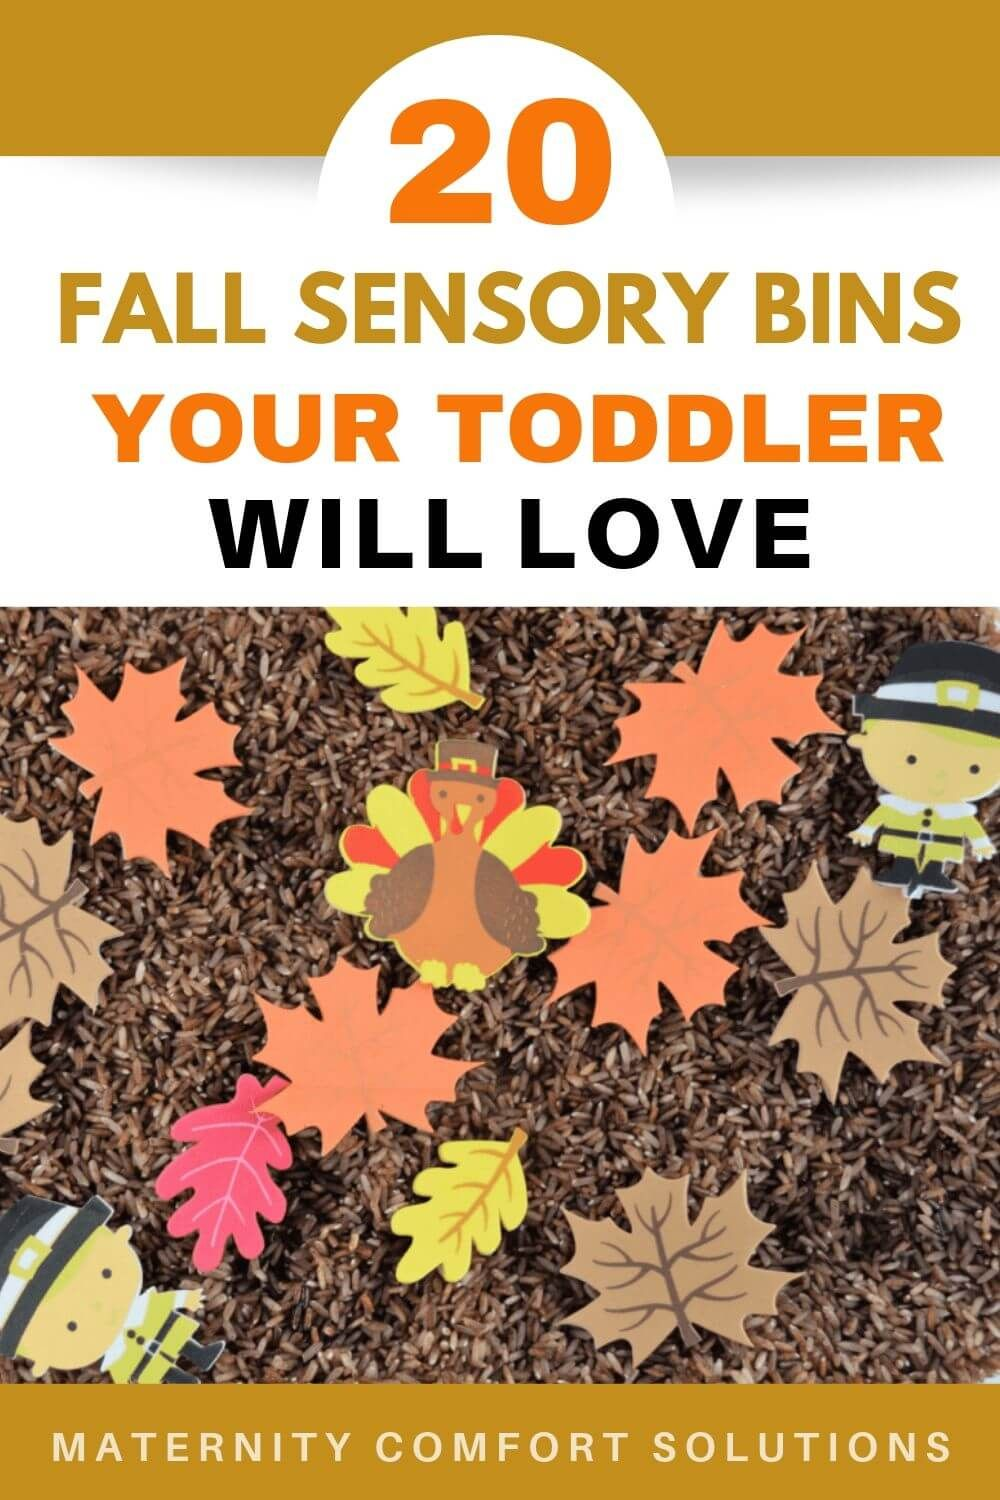 20 Fall Sensory Bins Your Toddler Will Love